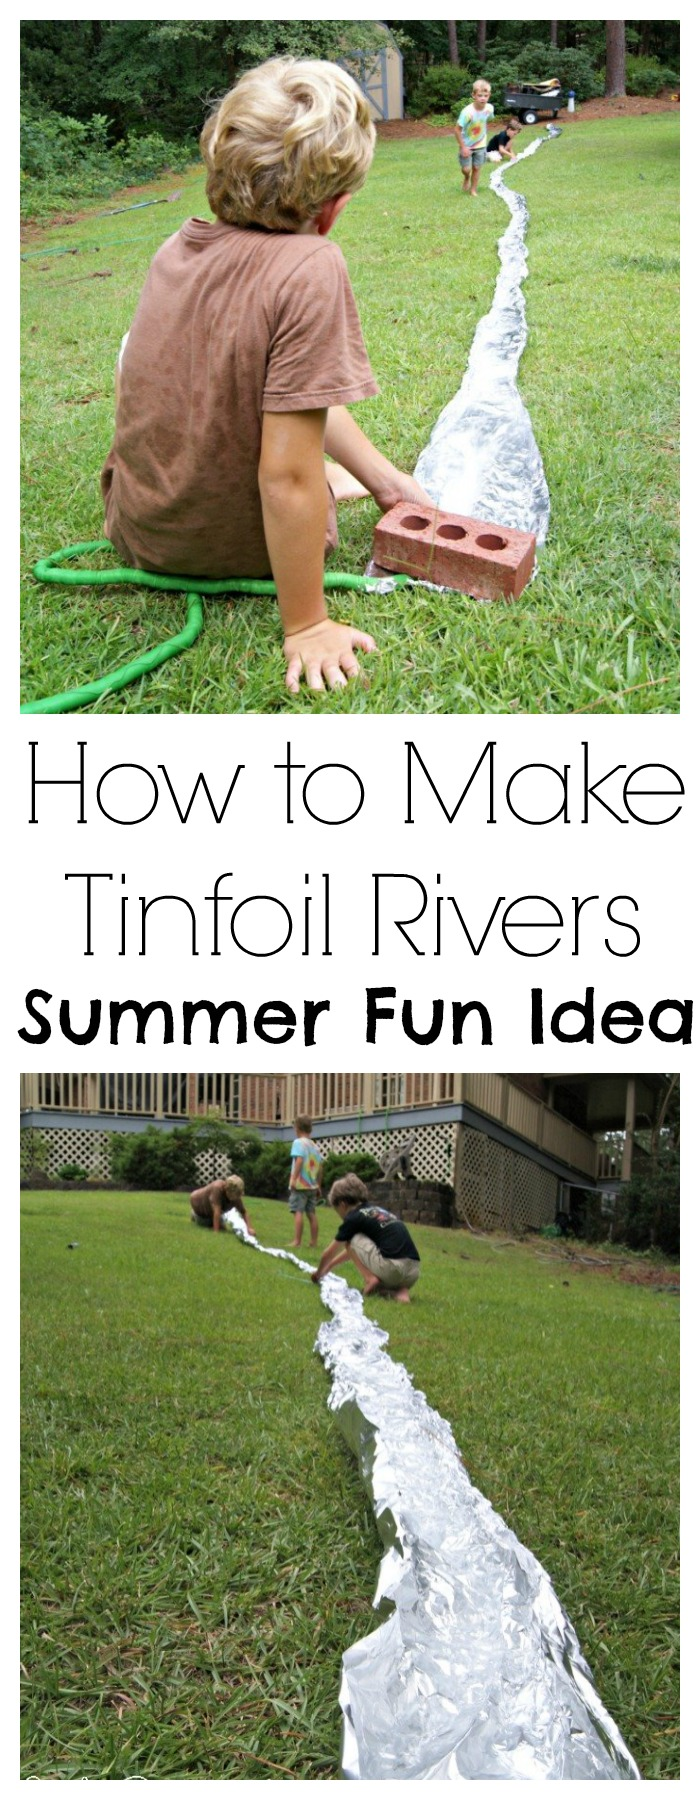 Oh my goodness! My boy children LOVED this Summer Fun Idea for How to Make Tinfoil Rivers. All they needed was a cheap roll of tinfoil, an incline of some sort, and running water.